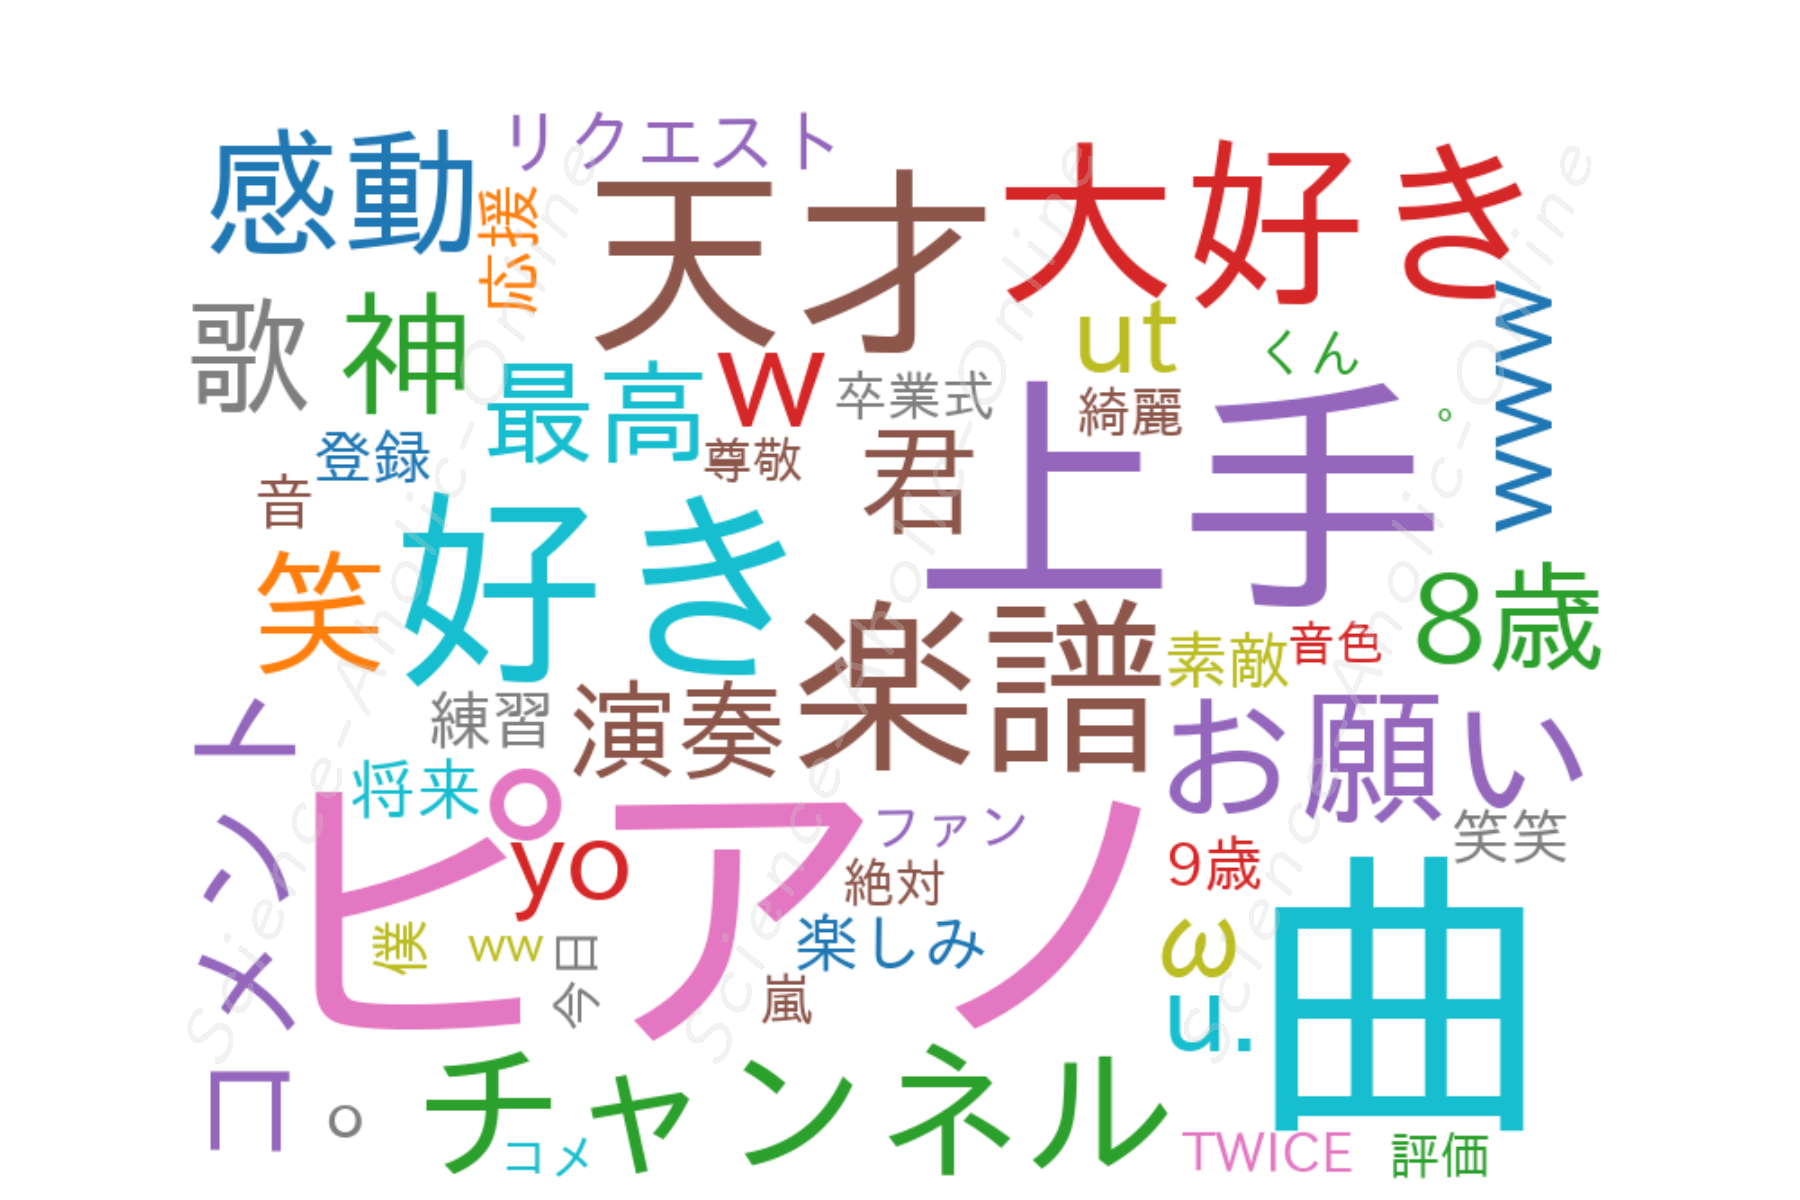 https://science-aholic-online.com/wp-content/uploads/2020/08/wordcloud_ぴーあおチャンネル.png